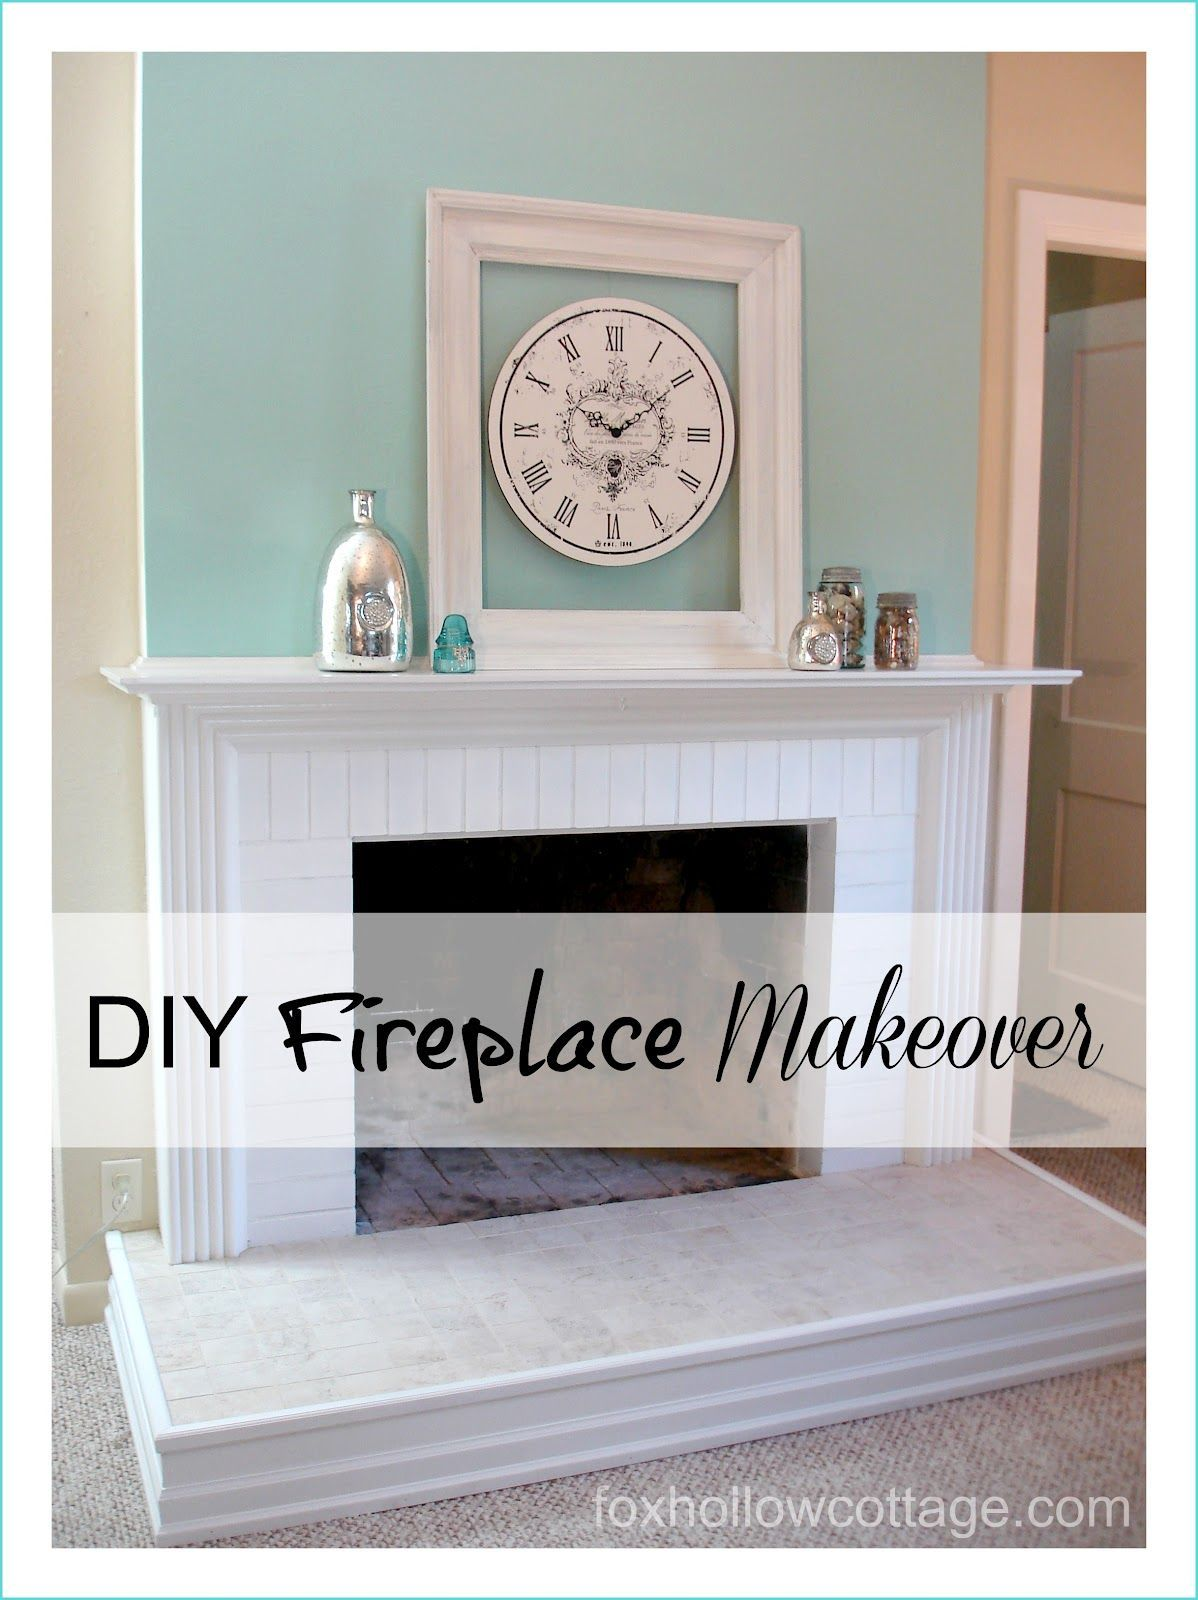 Fireplace Mantel & Hearth Makeover. fireplace mantel